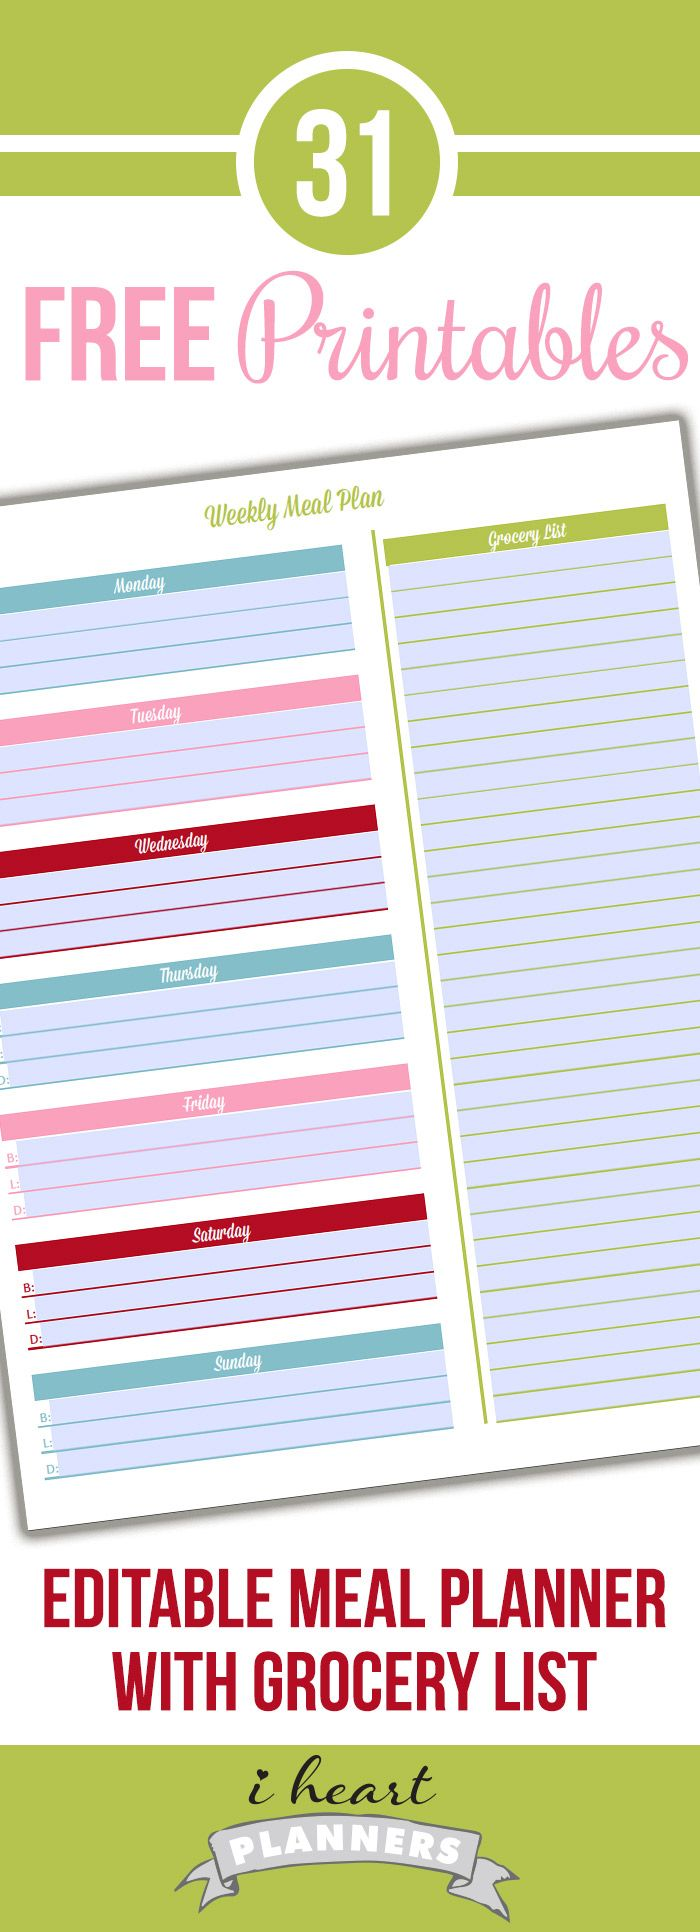 Day  Editable Meal Planner With Grocery List  Weekly Menu